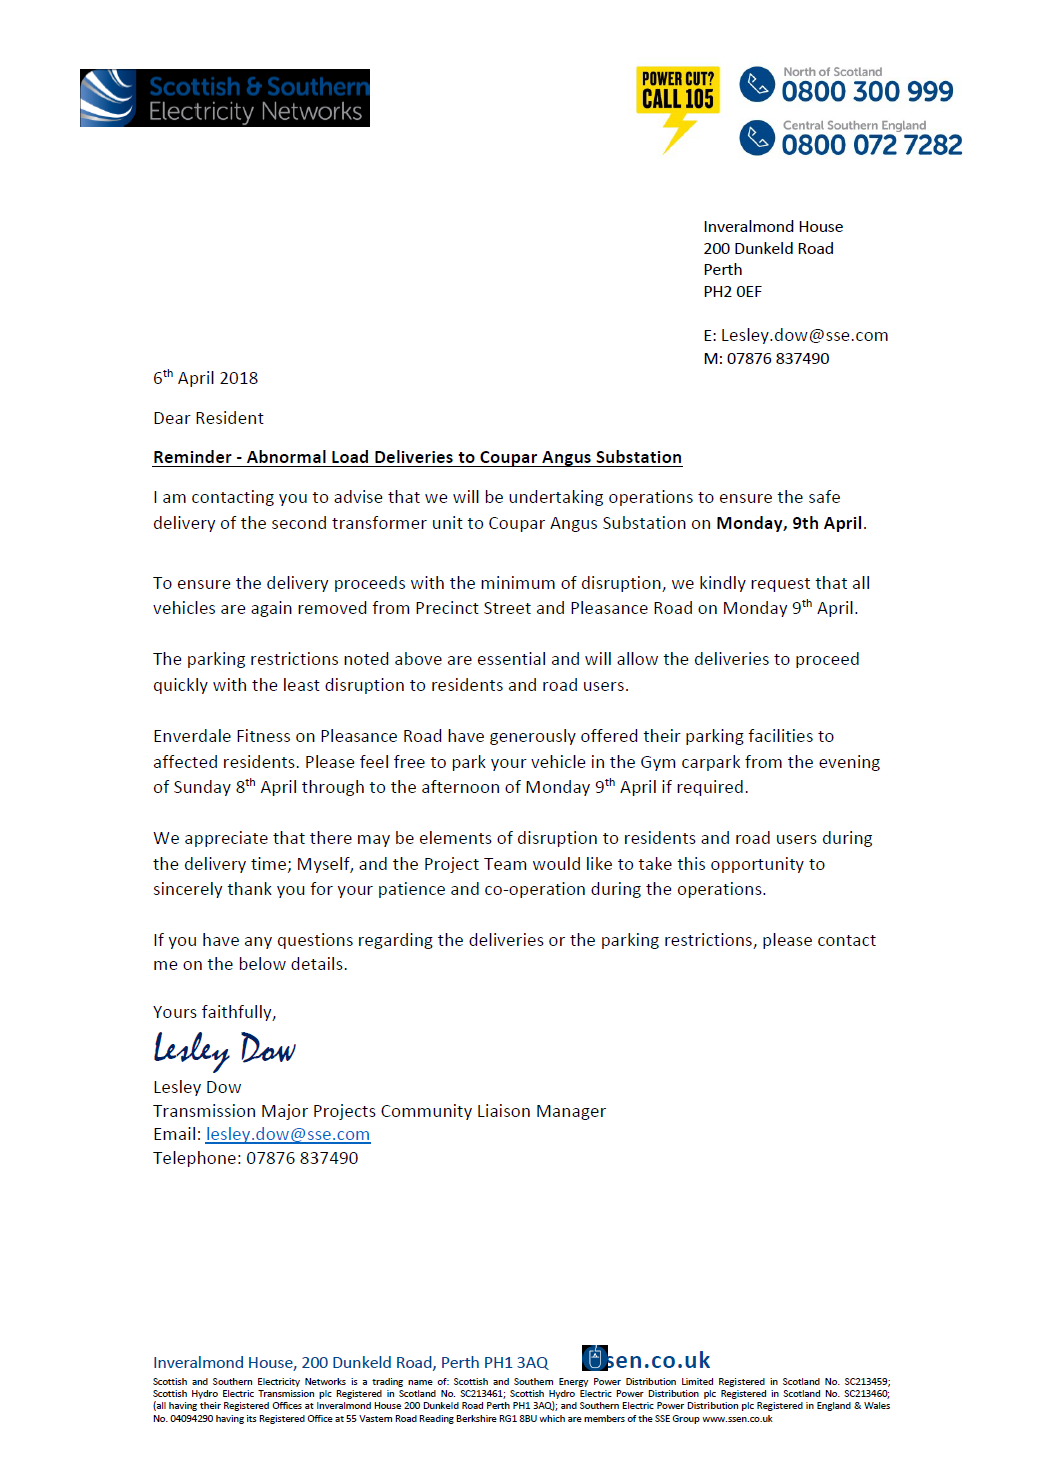 picture of letter from Scottish and Southern, asking residents of Precinct Street and Pleasance Road to move their cars to allow easy passage of a second transformer on Monday 9th April 2018.